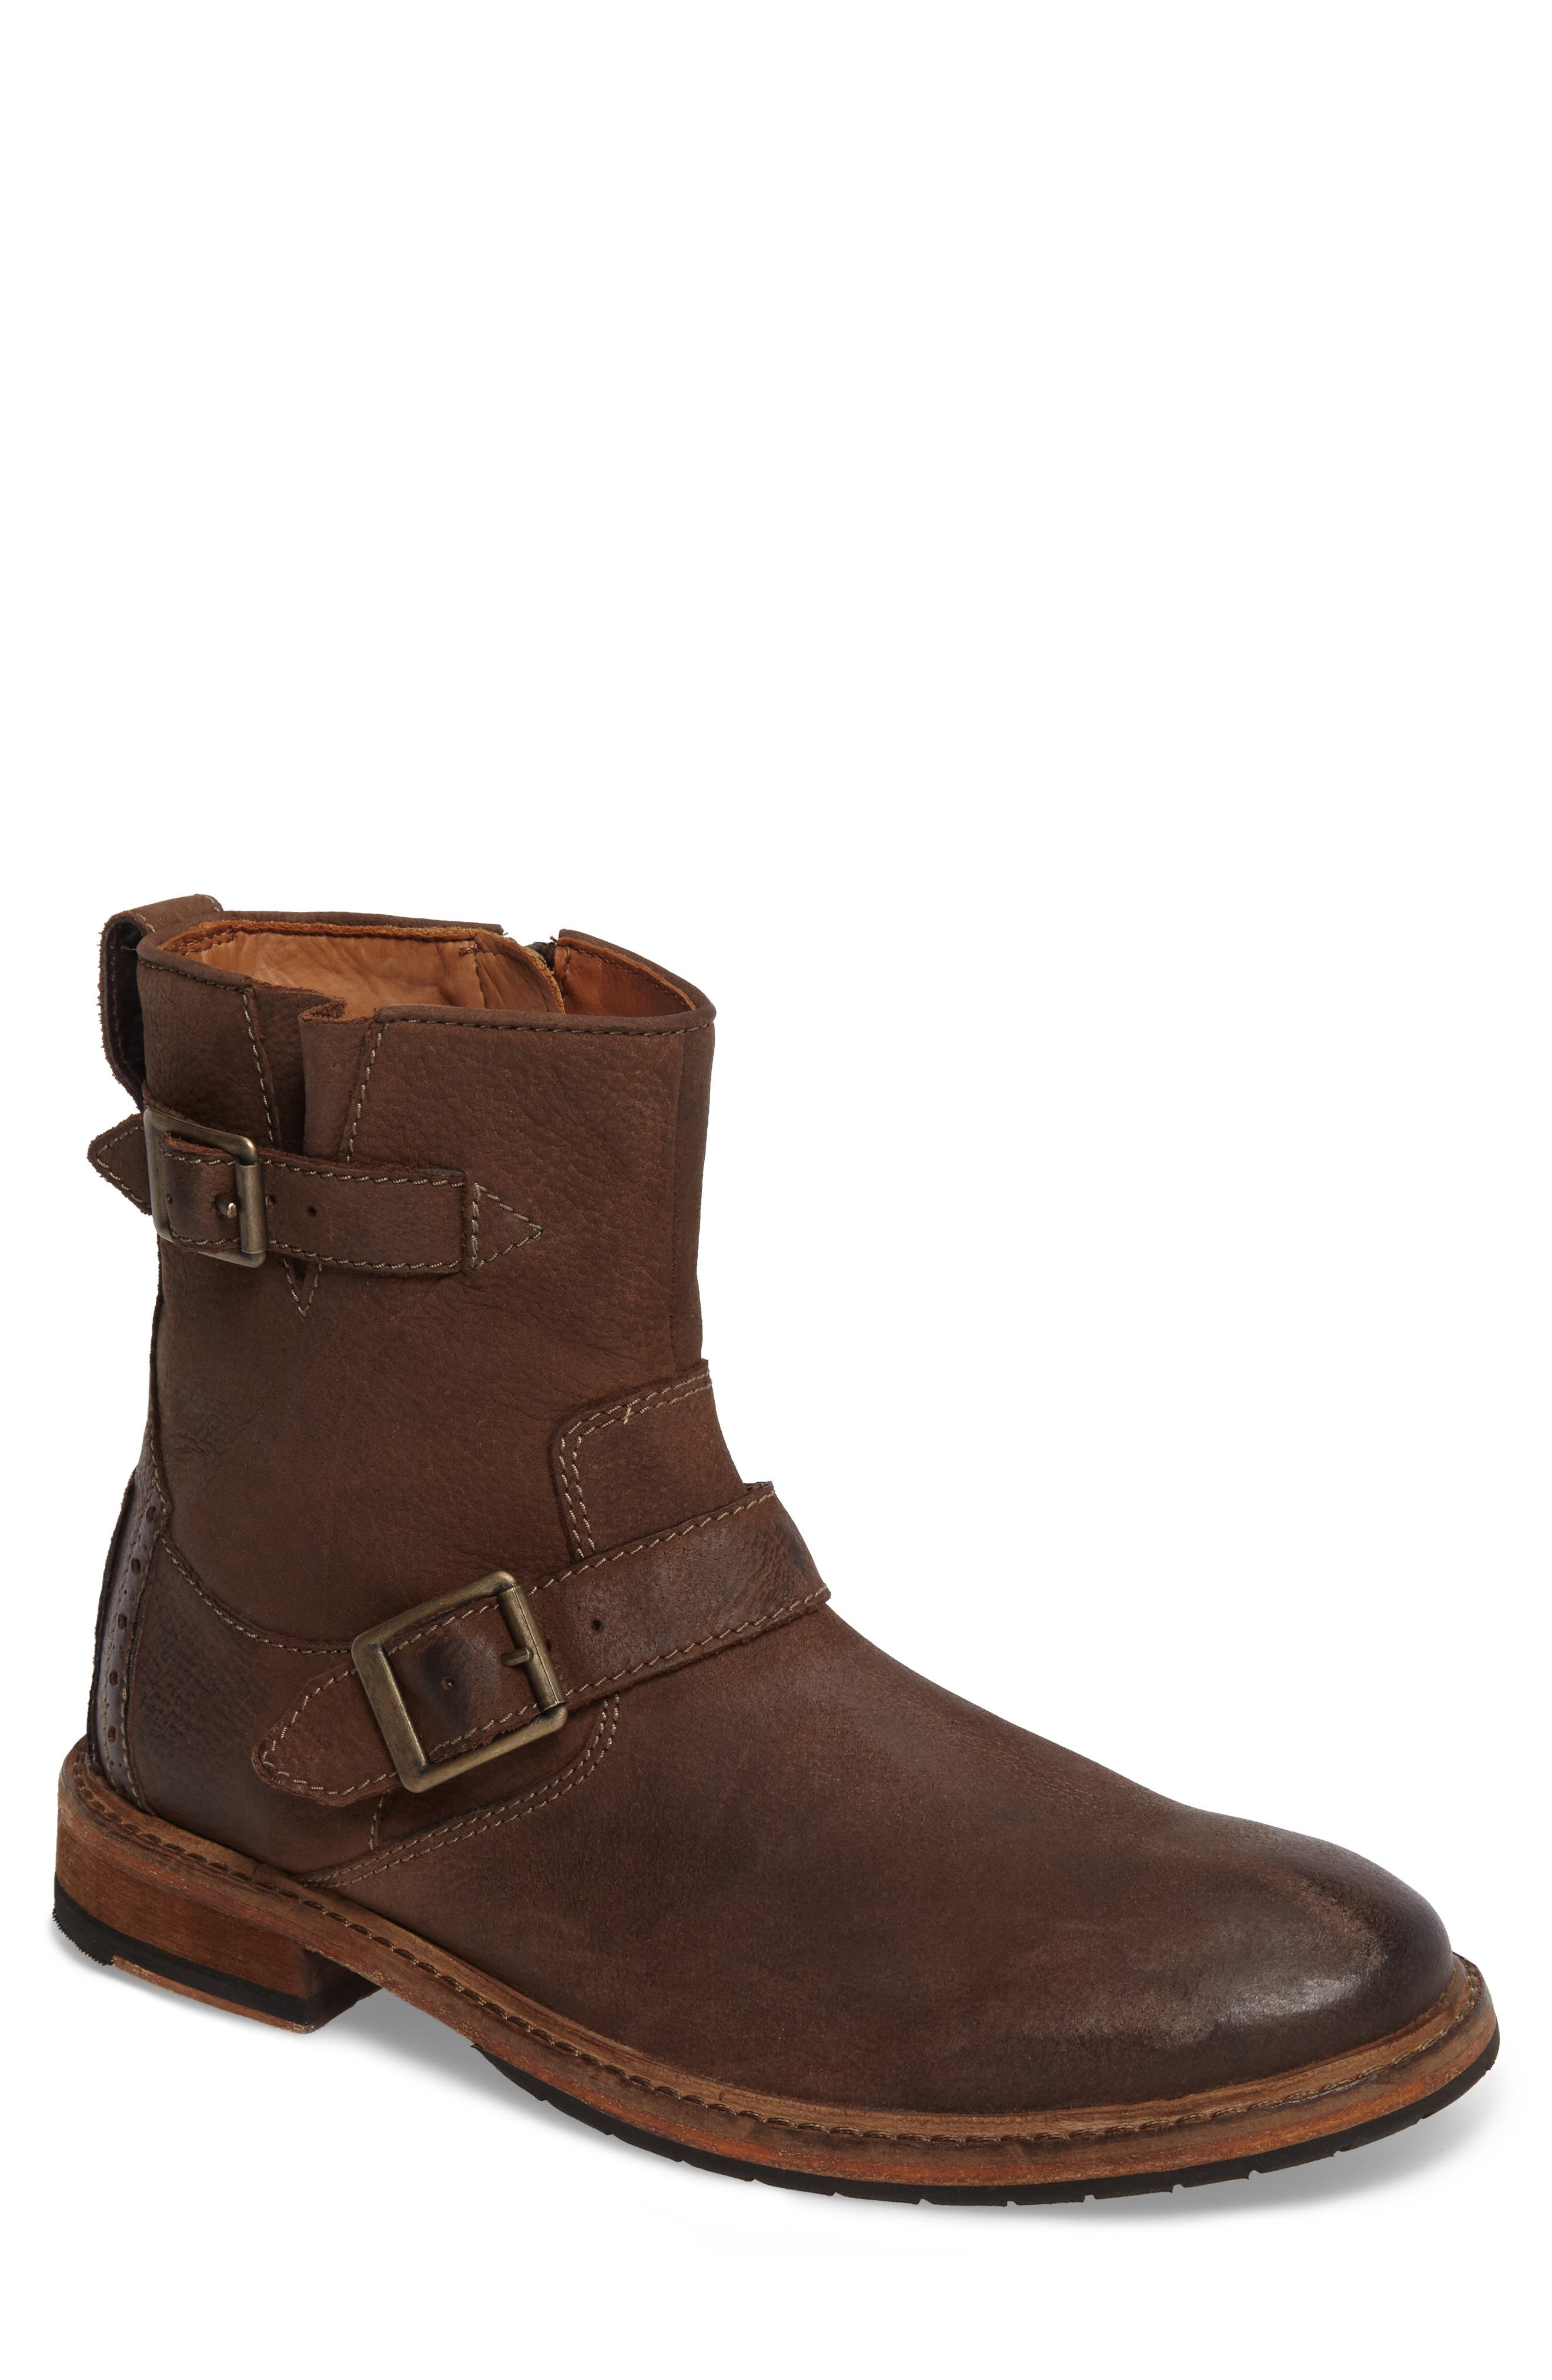 CLARKS<SUP>®</SUP> Clarkdale Cash Boot, Main, color, 216